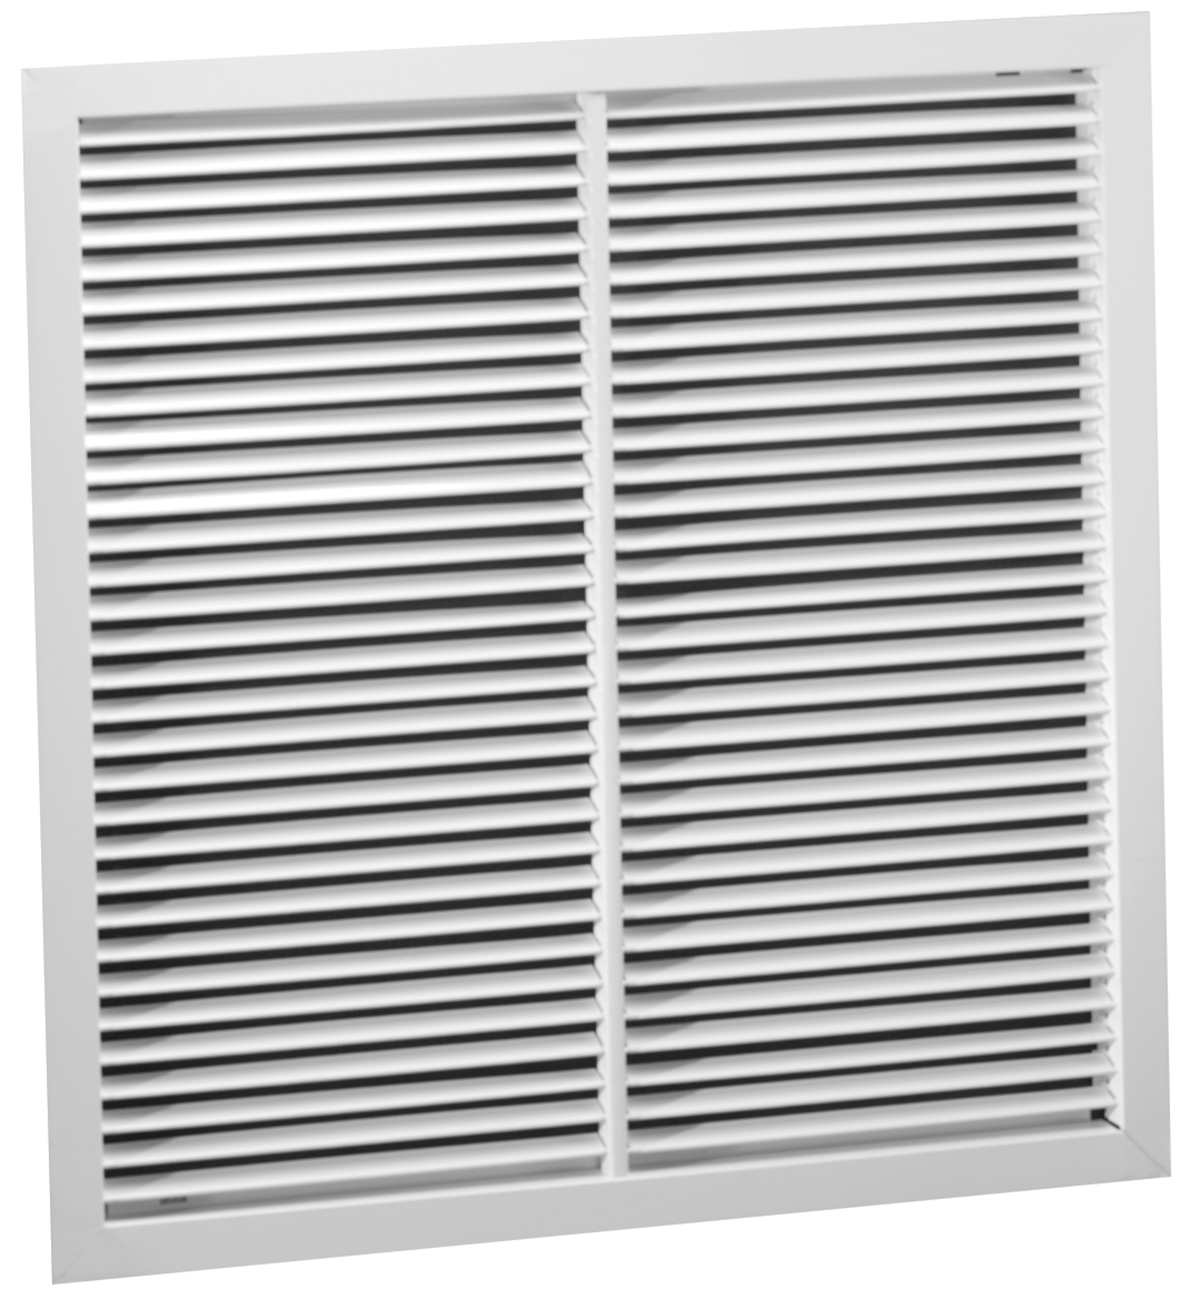 #333333 94AT Steel Return Air Grille 35 Degree Deflection  Highly Rated 2319 Drop Ceiling Return Air Grille wallpapers with 1200x1289 px on helpvideos.info - Air Conditioners, Air Coolers and more